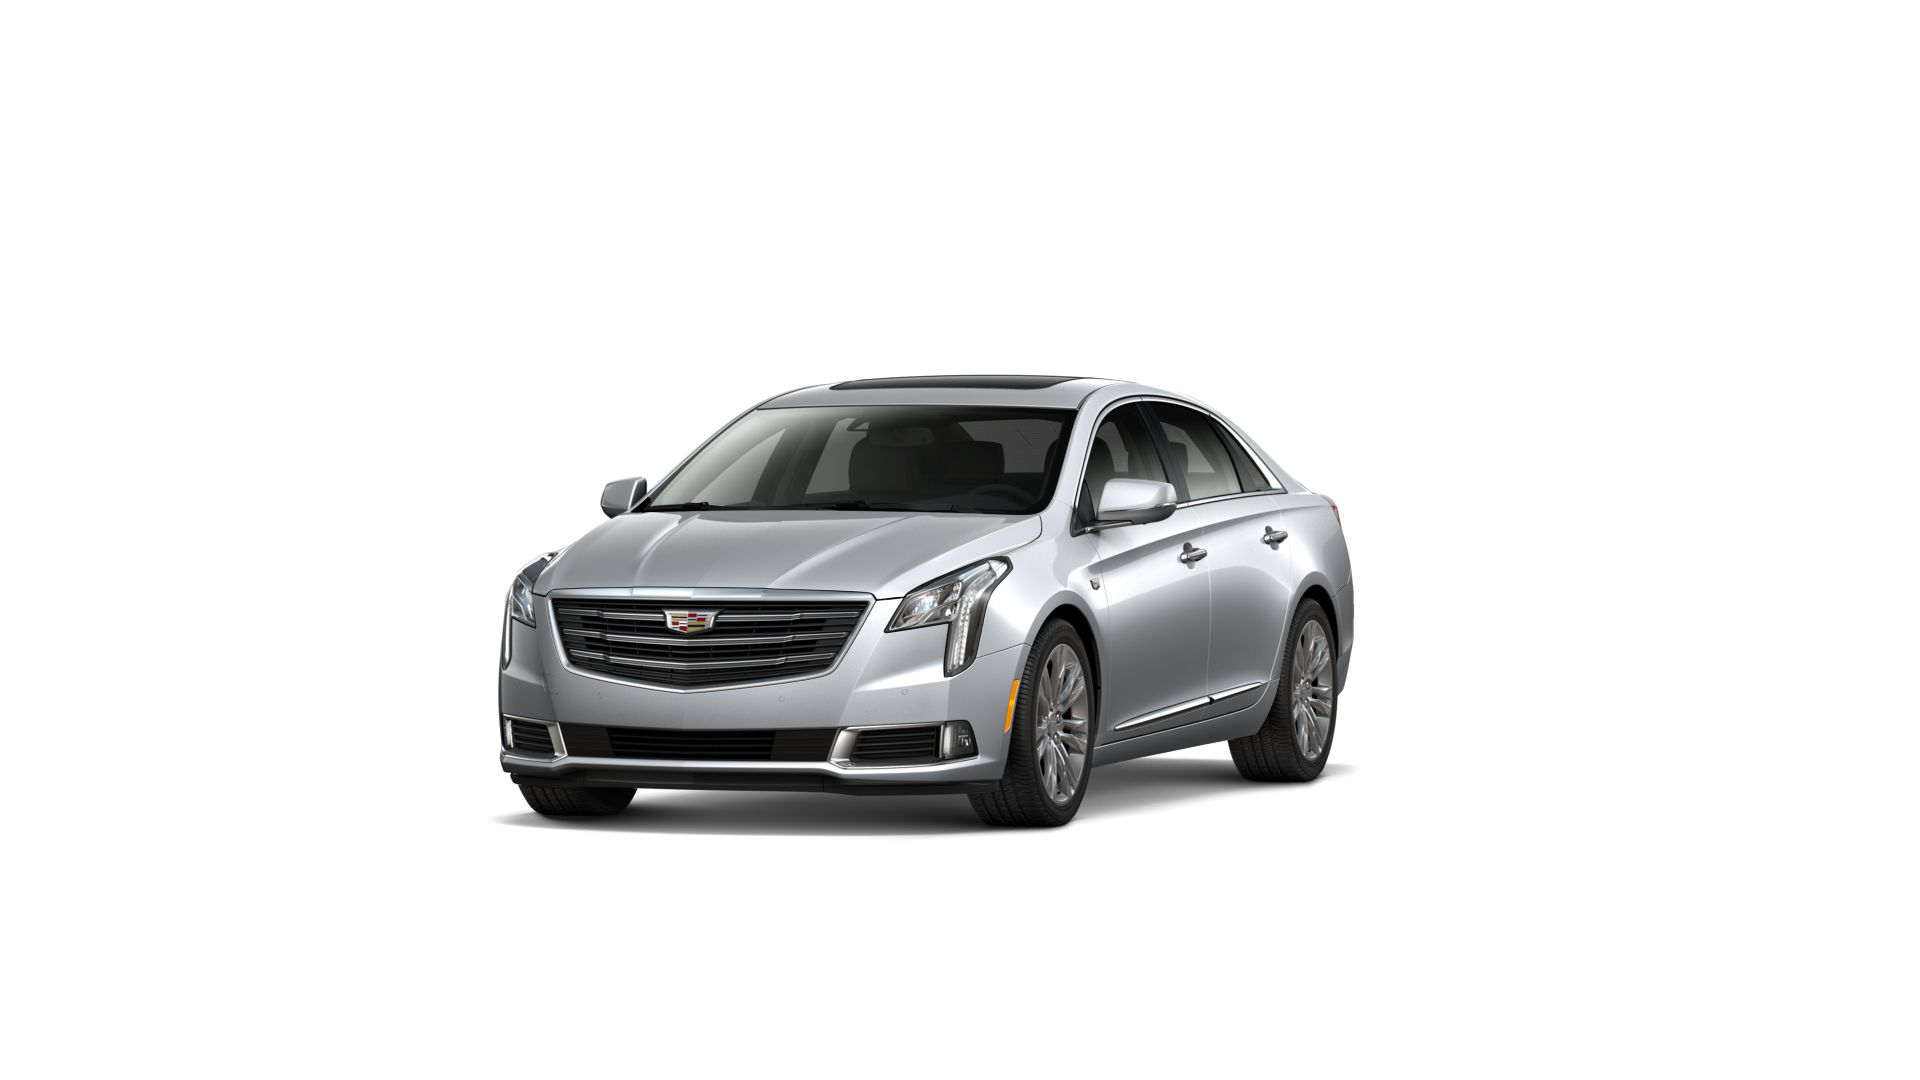 New 2019 Cadillac XTS Luxury FWD FRONT WHEEL DRIVE Sedan